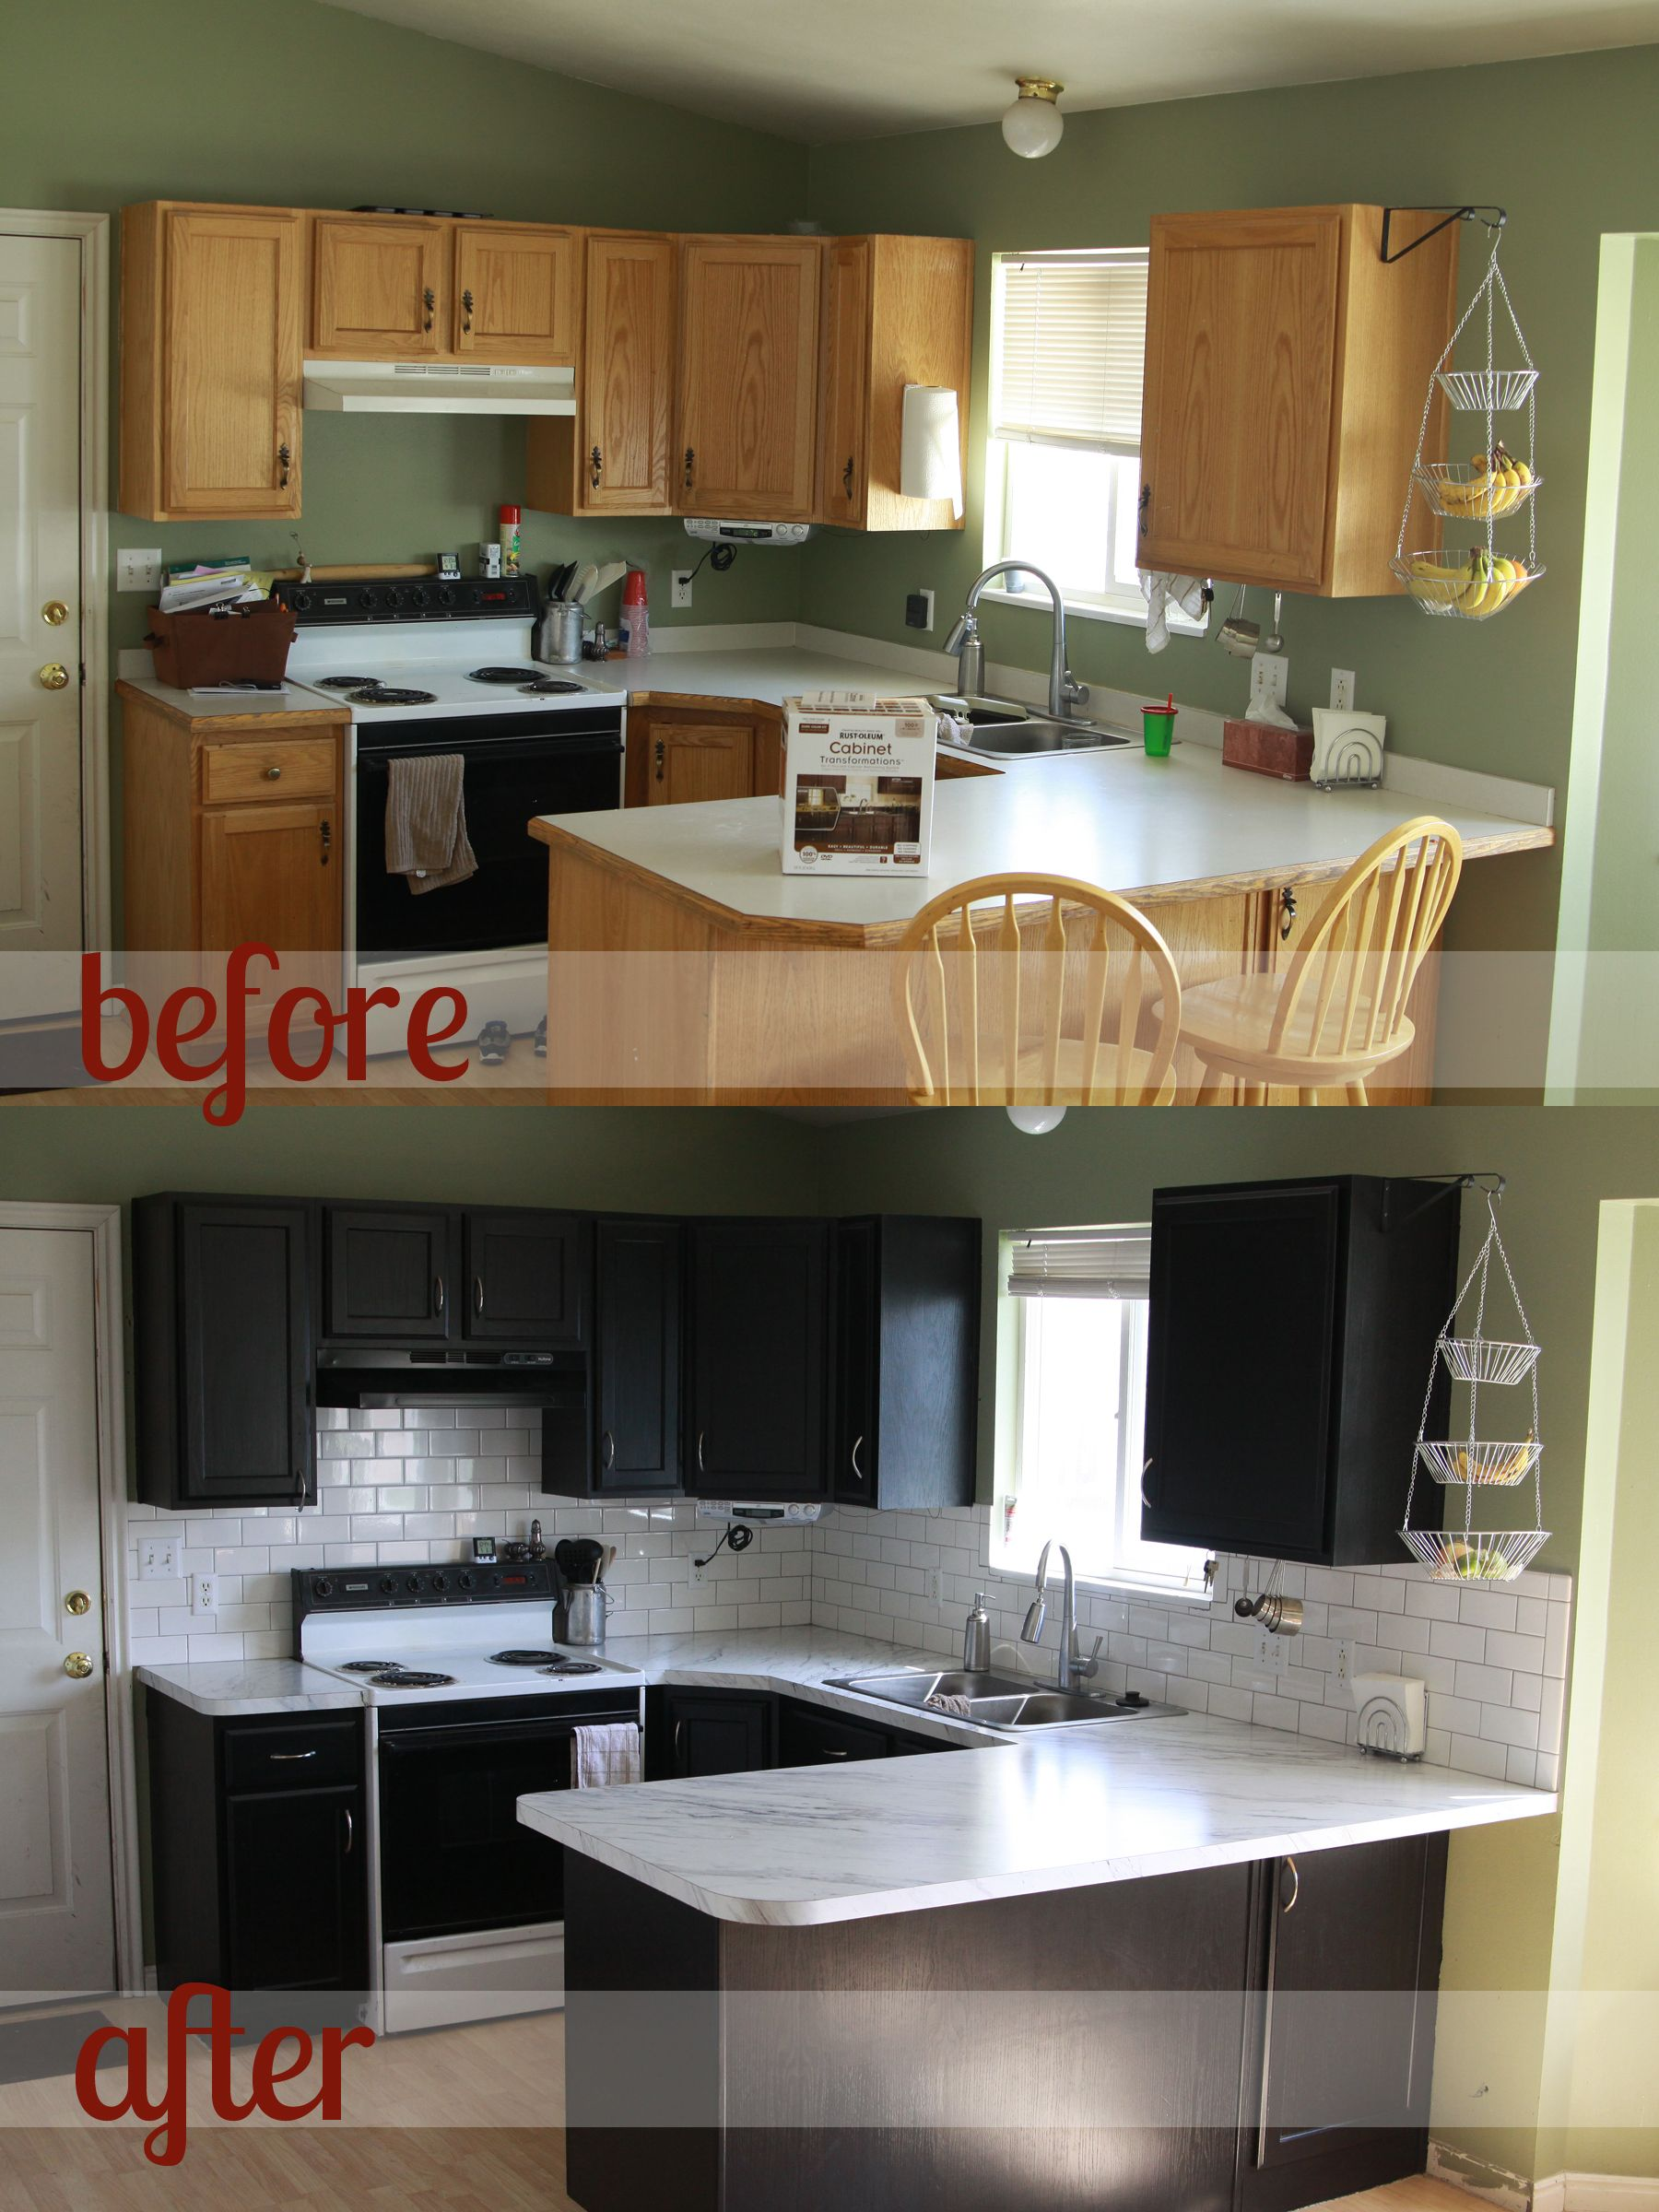 Rustoleum Cabinet Transformations Review Before After And Tips Tricks It S Always Autumn Diy Kitchen Remodel Kitchen Renovation Painting Kitchen Cabinets